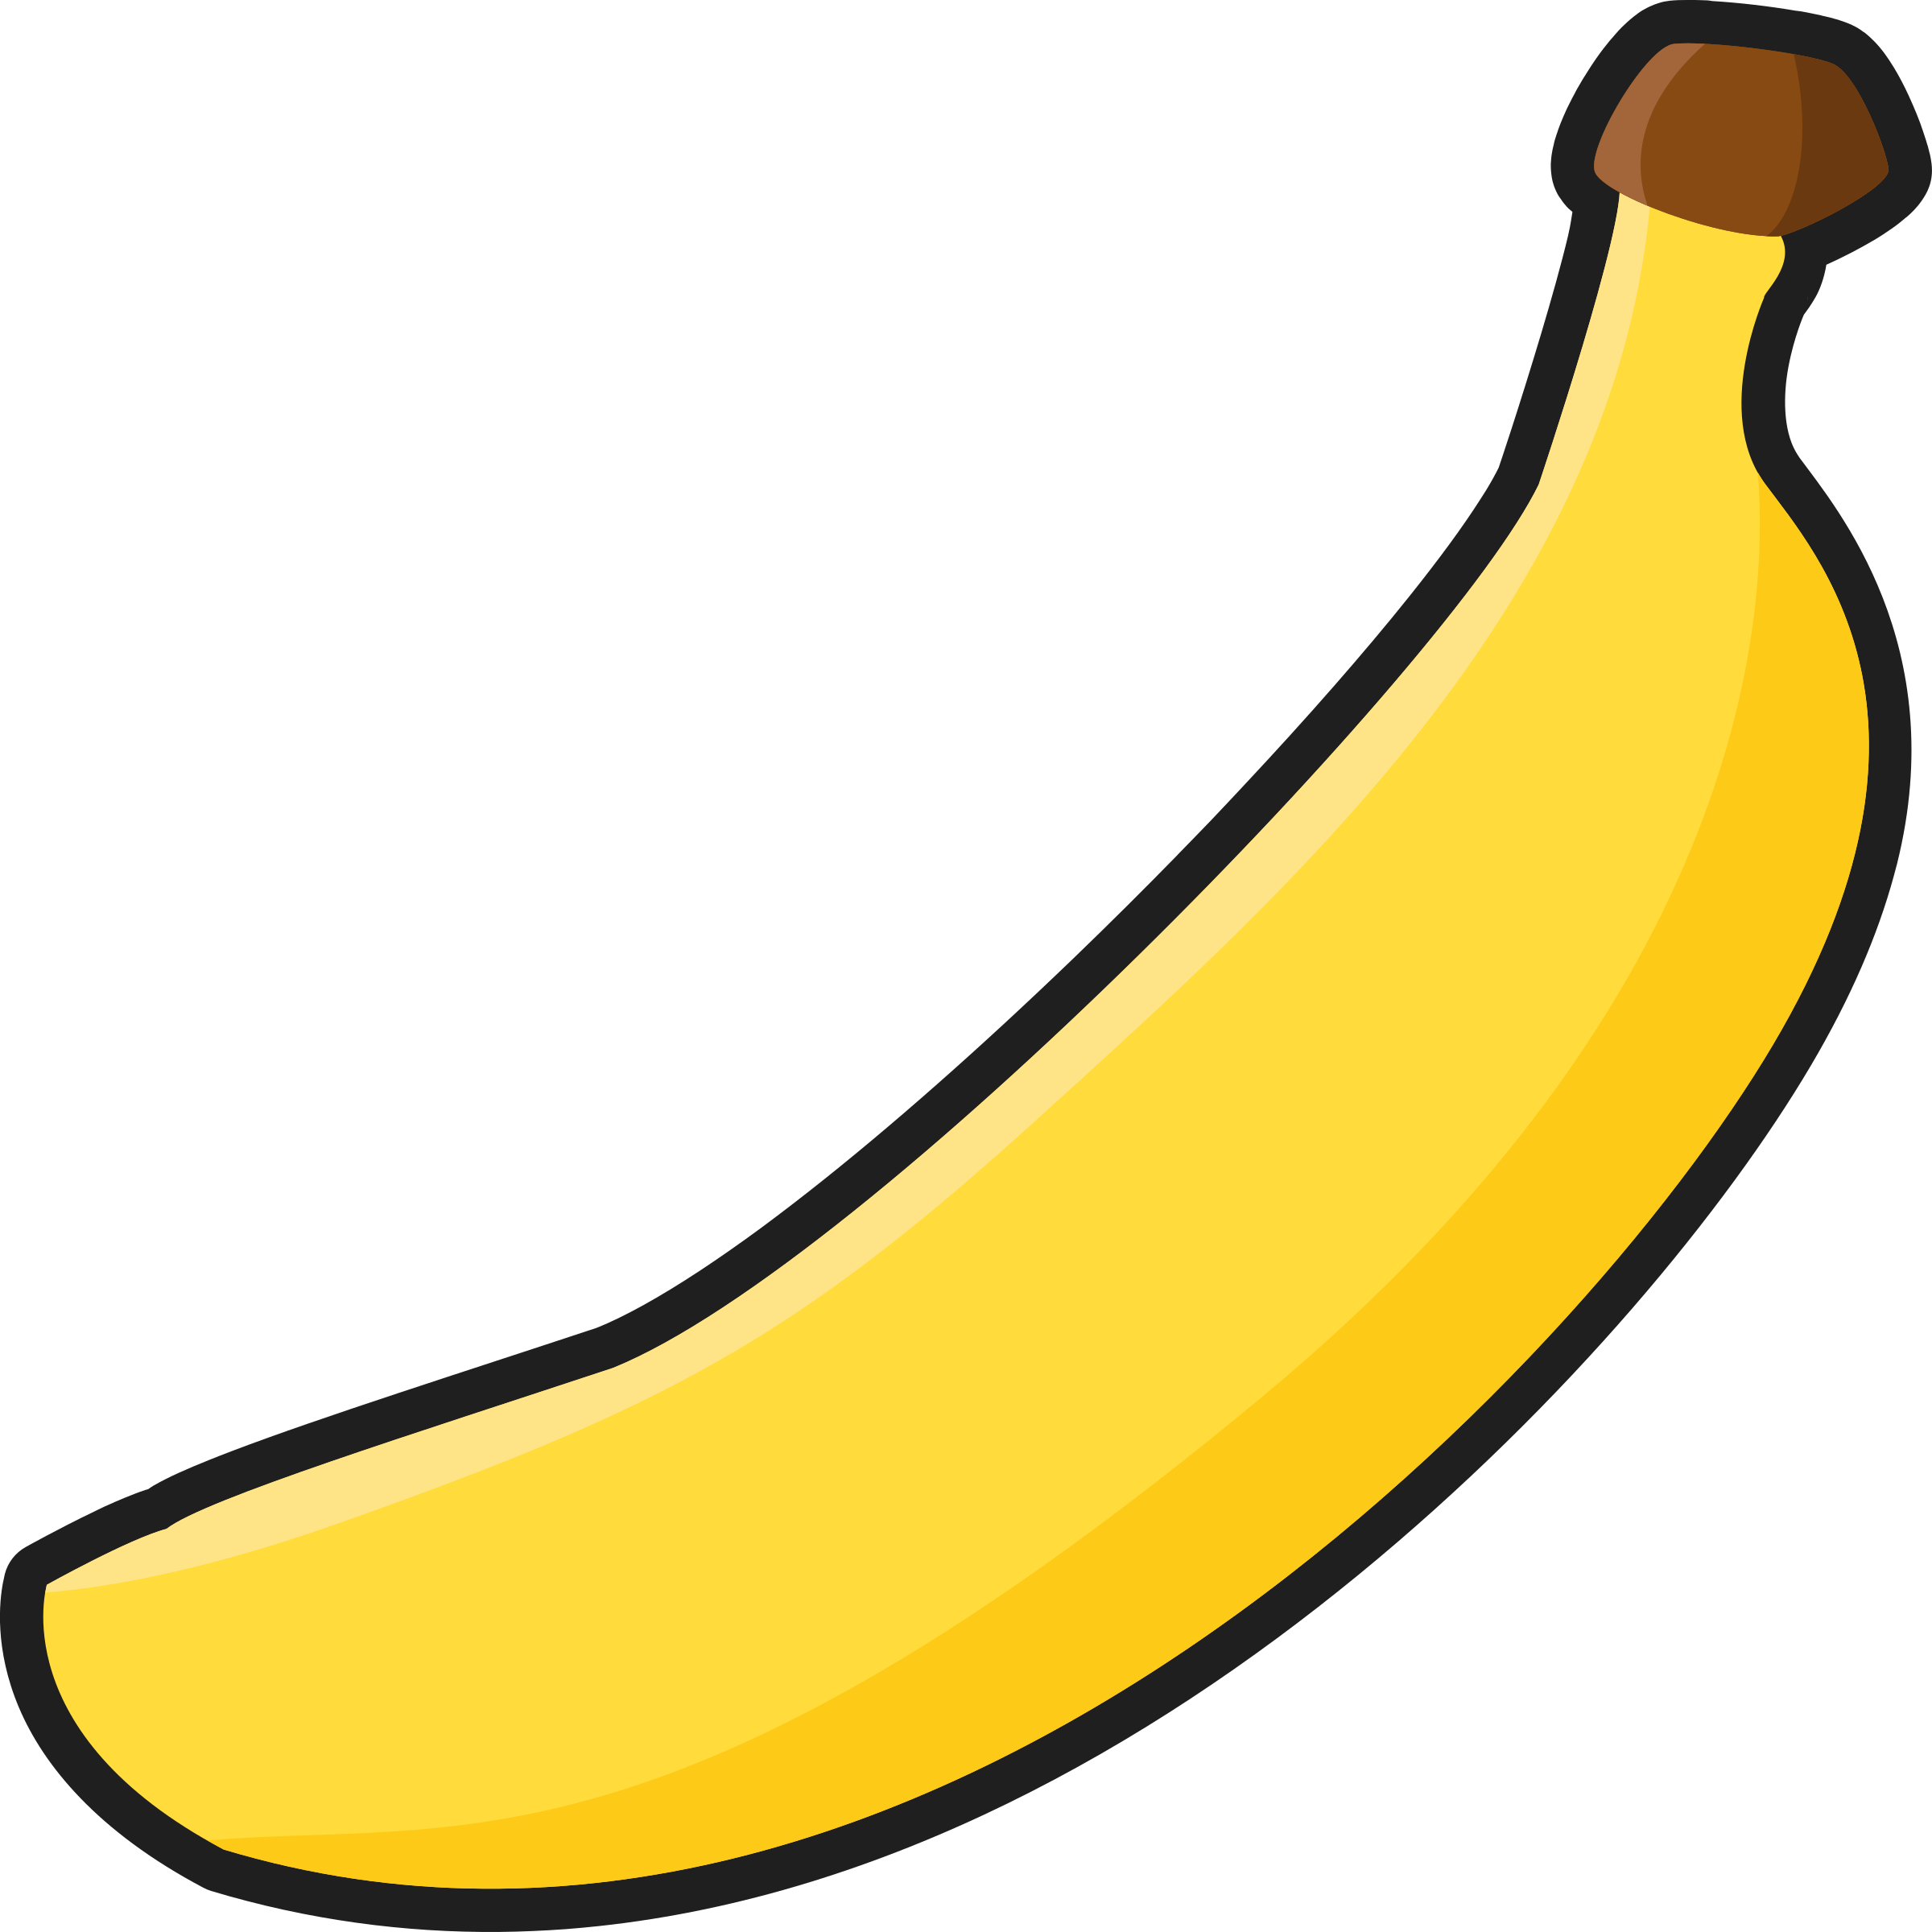 Banana outlined big image. Clipart pencil simple